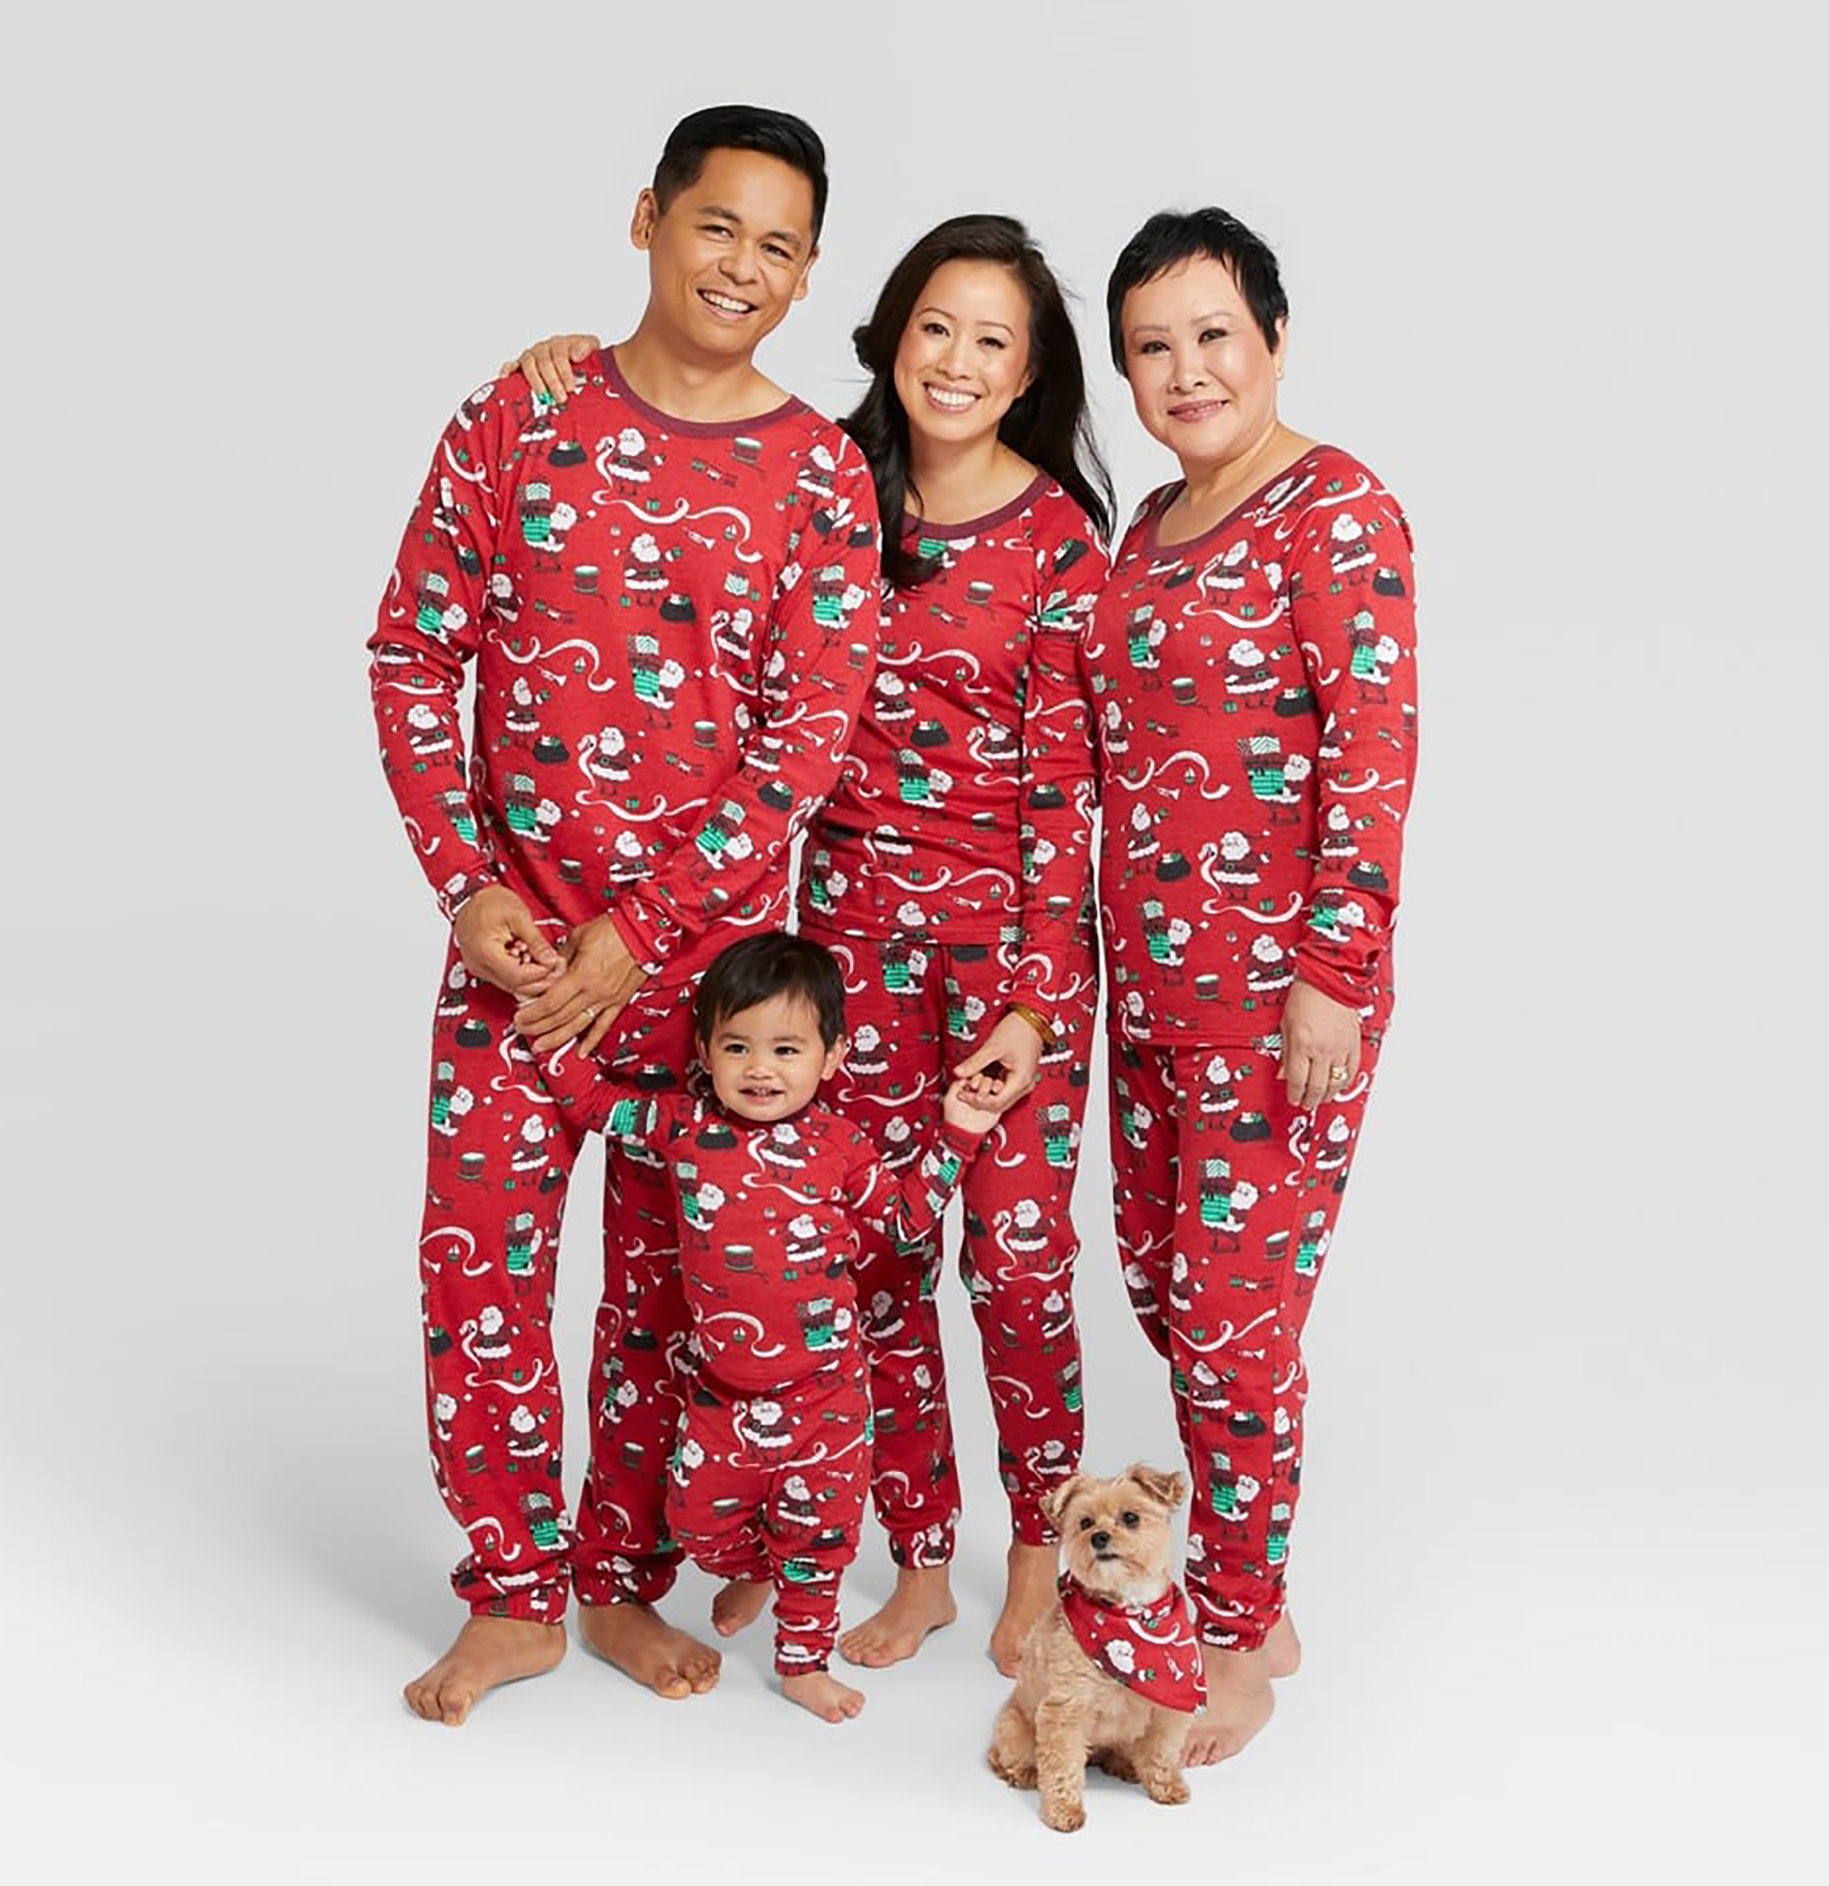 Nite Nite Munki Munki Holiday Santa s List Family Pajamas Collection. Matching  Family Pajama ... 3ca7629a3